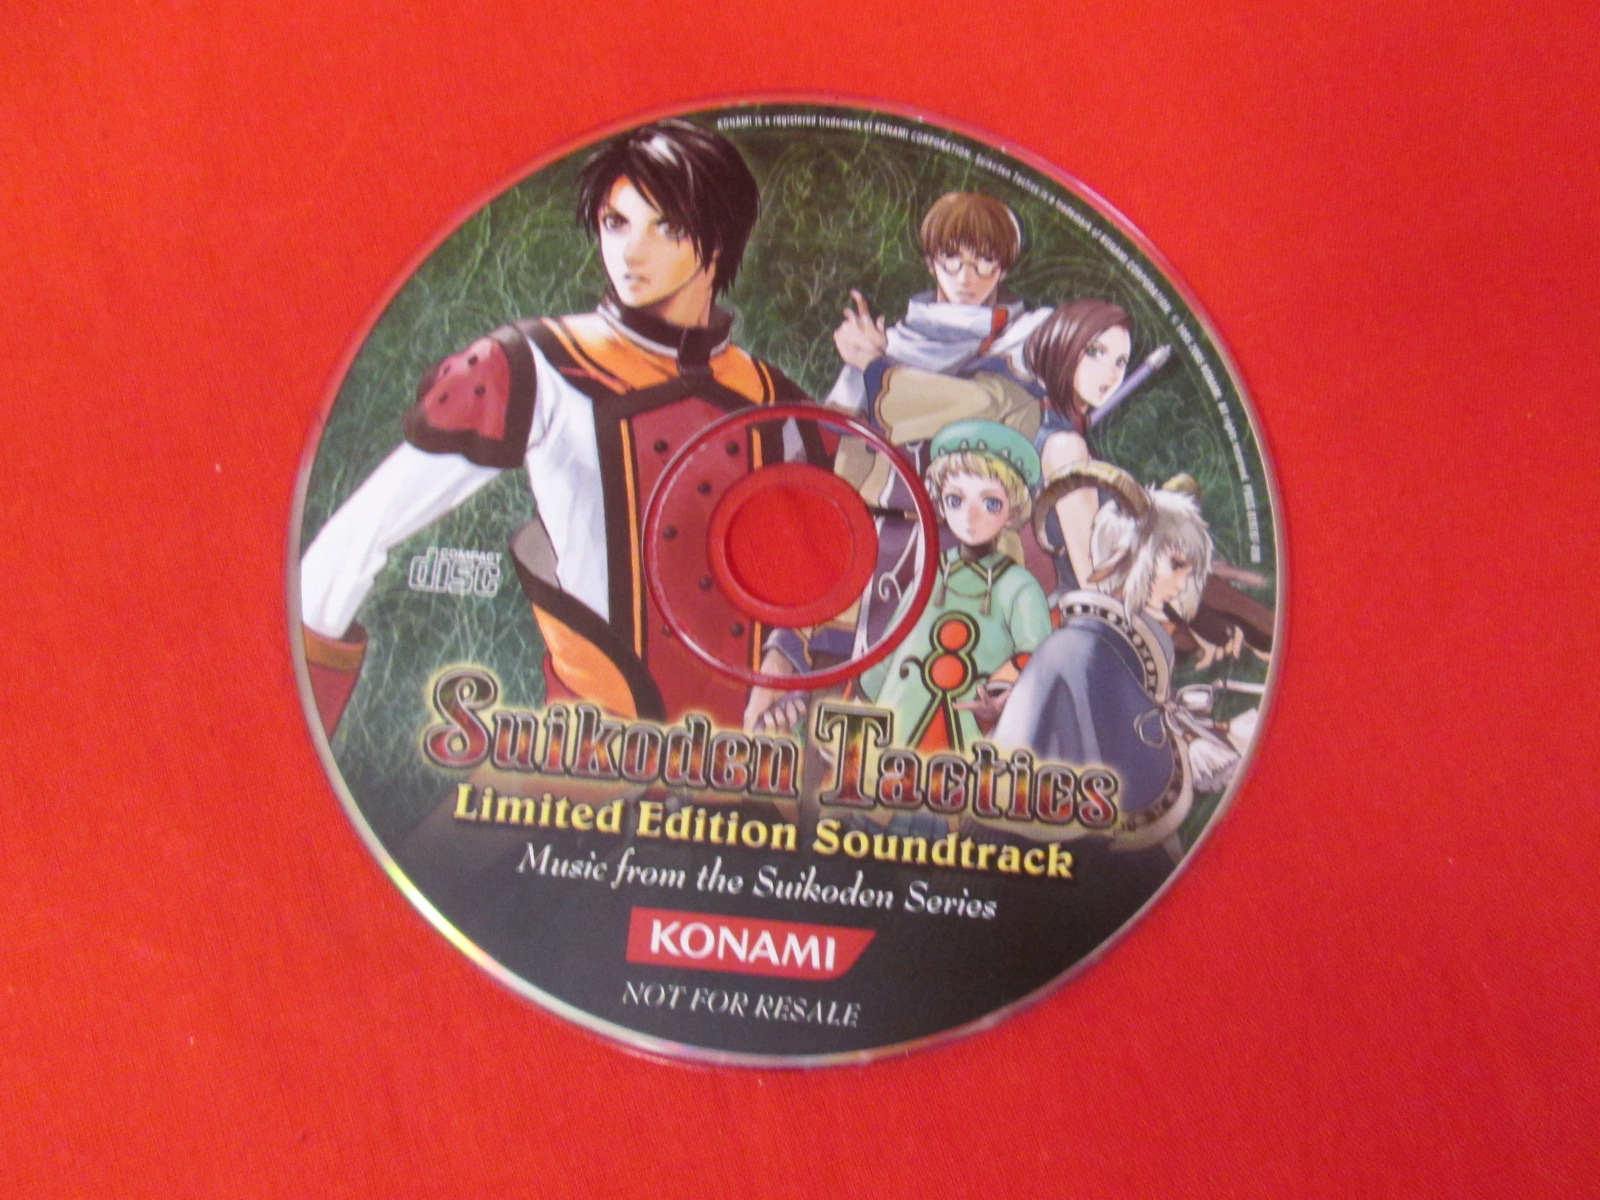 Suikoden Tactics Limited Edition Soundtrack Music CD